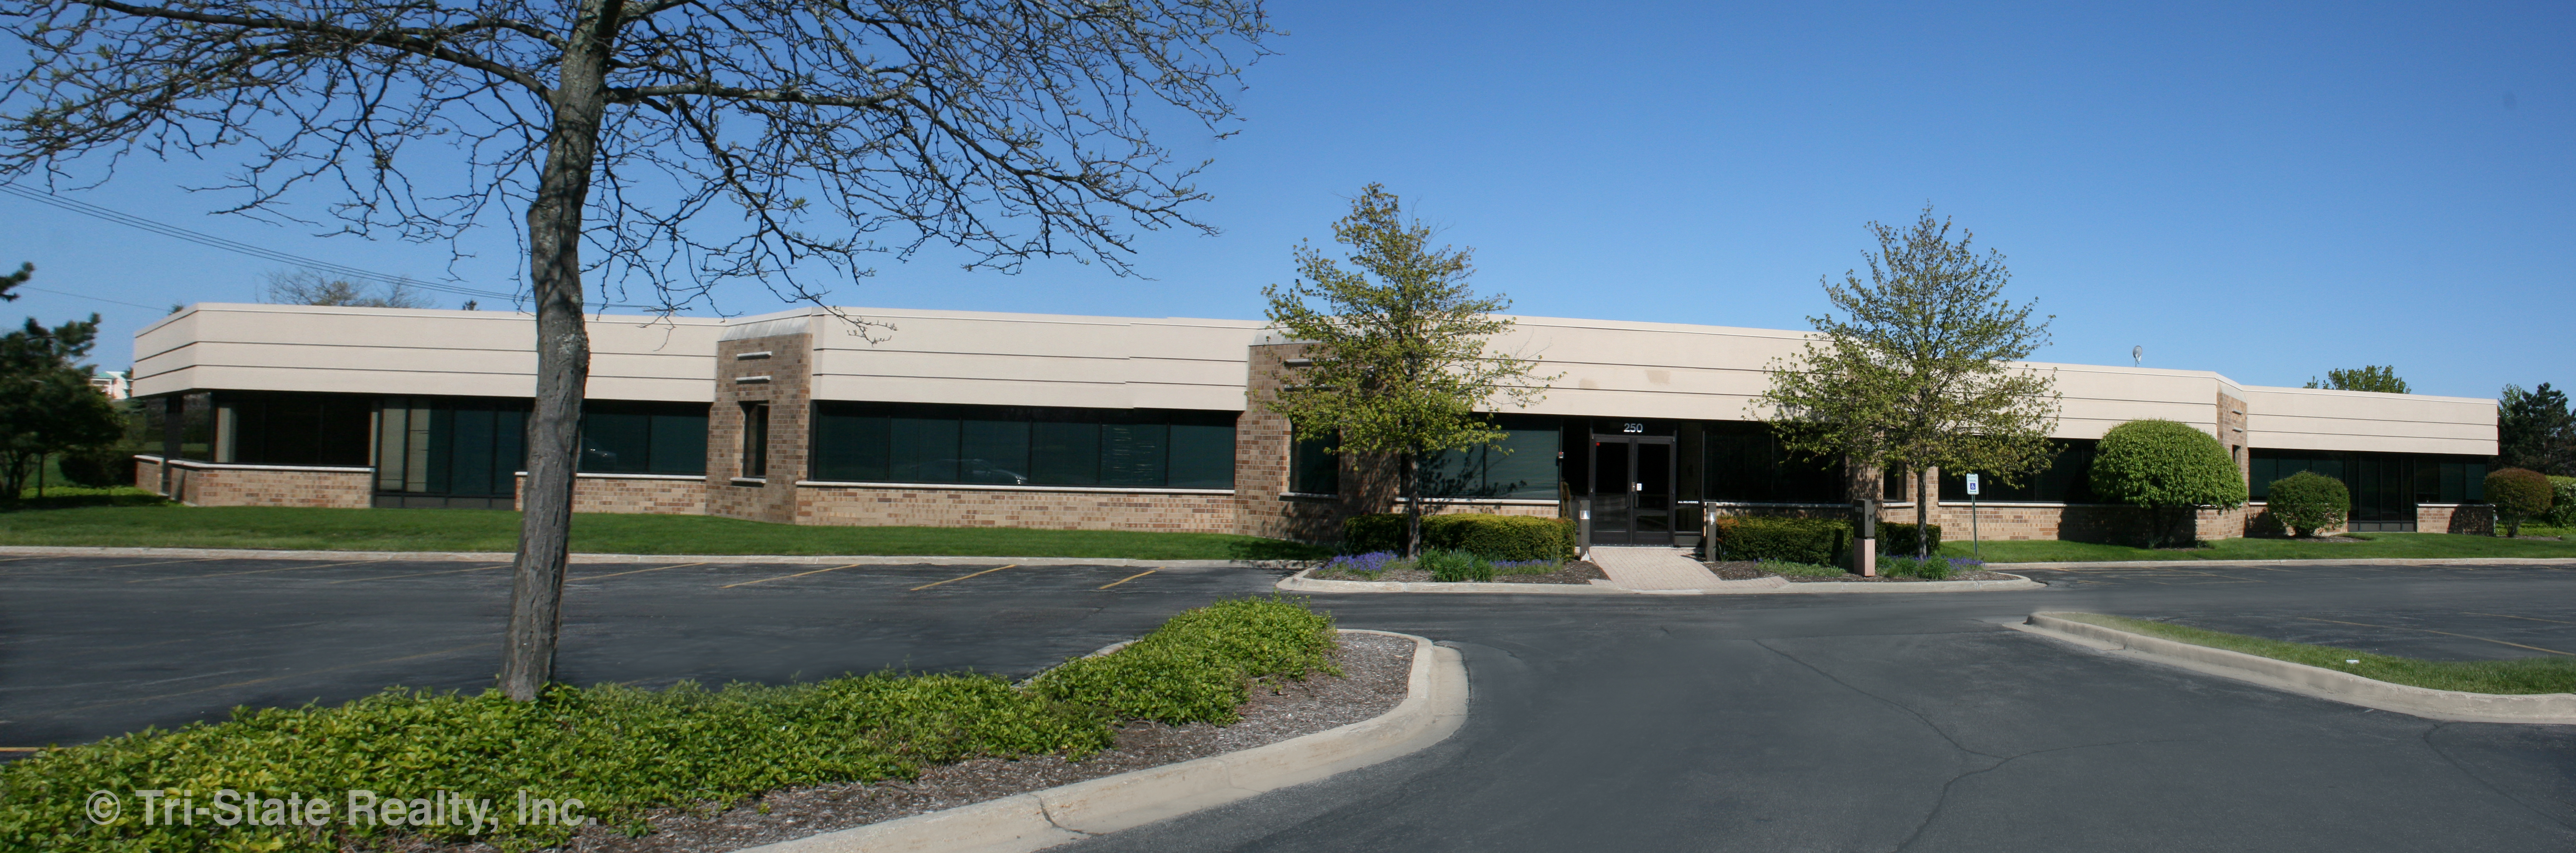 1375 Tri State Parkway, Suite 100, Crown Corporate Center – 22,746 Sq. Ft. Available